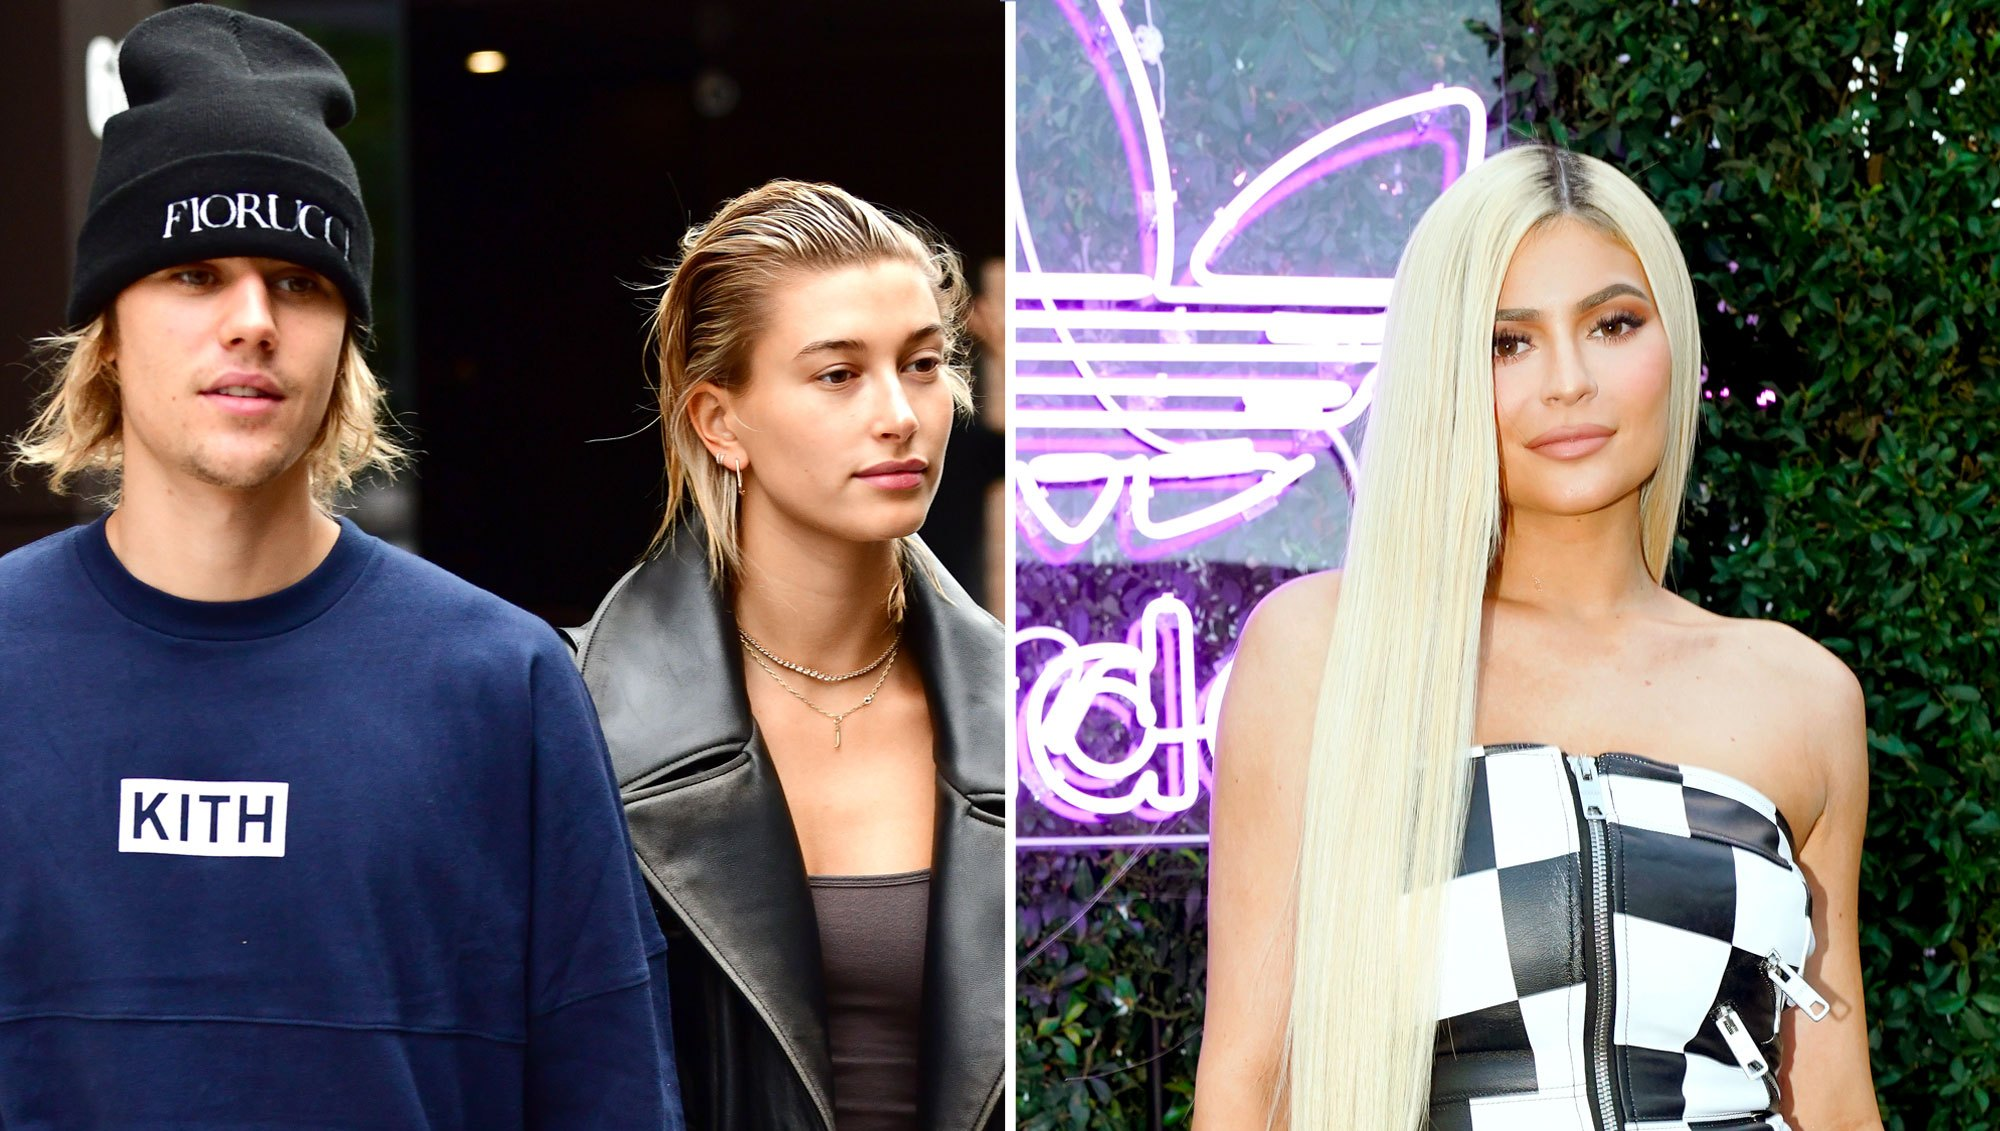 Justin-Bieber-Wants-an-Invite-to-Kylie-Jenner-Vacation